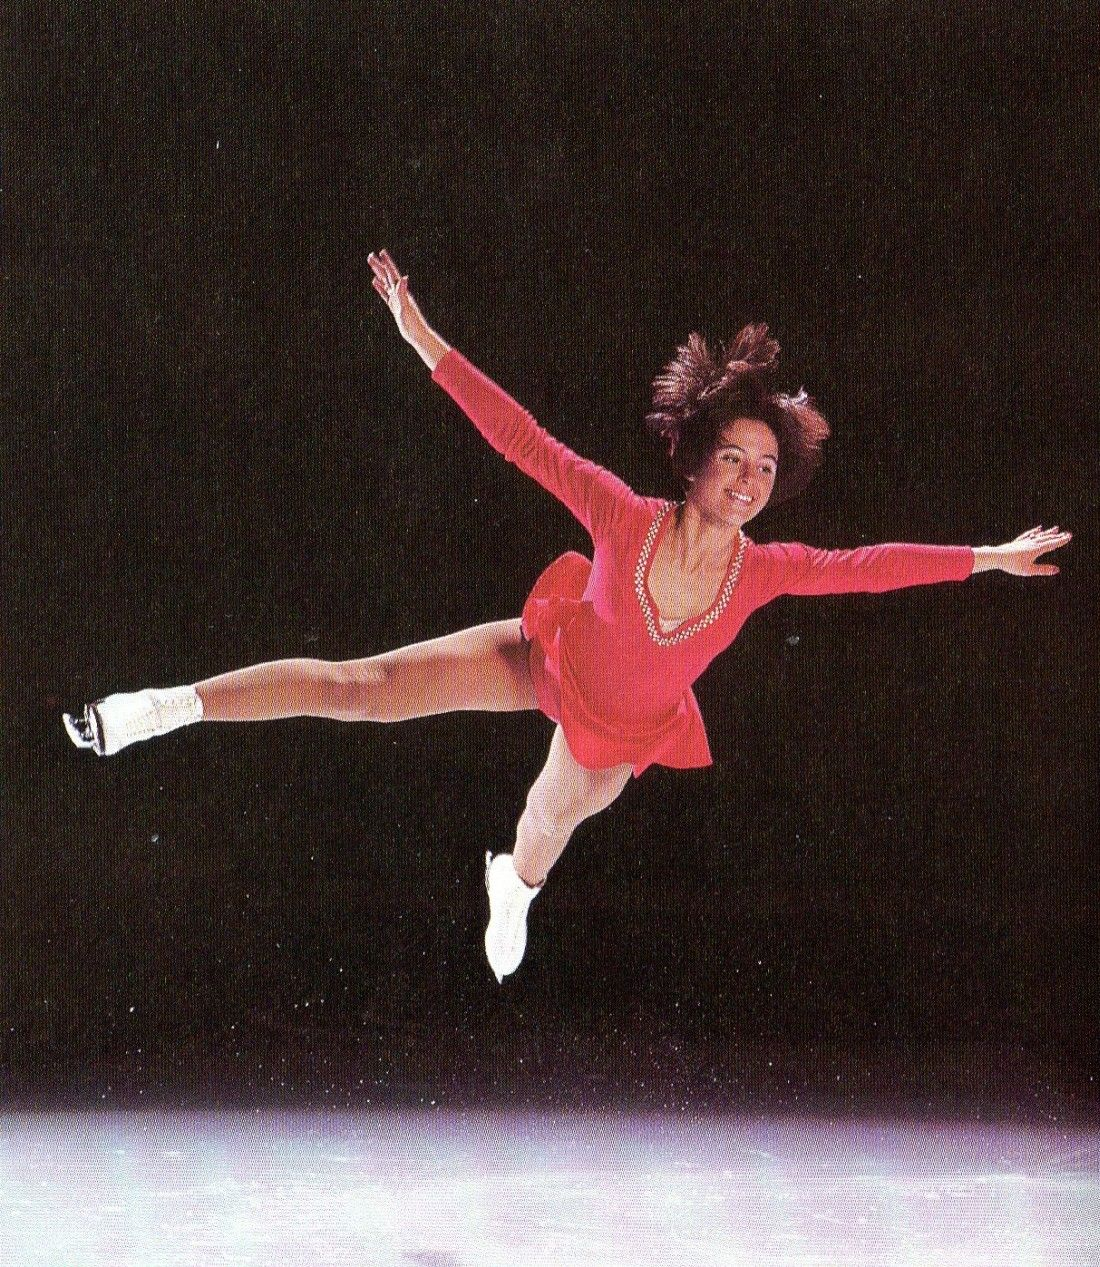 DOROTHY HAMILL IN FLIGHT I HAVE THIS PICTURE CUT IT OUT OF